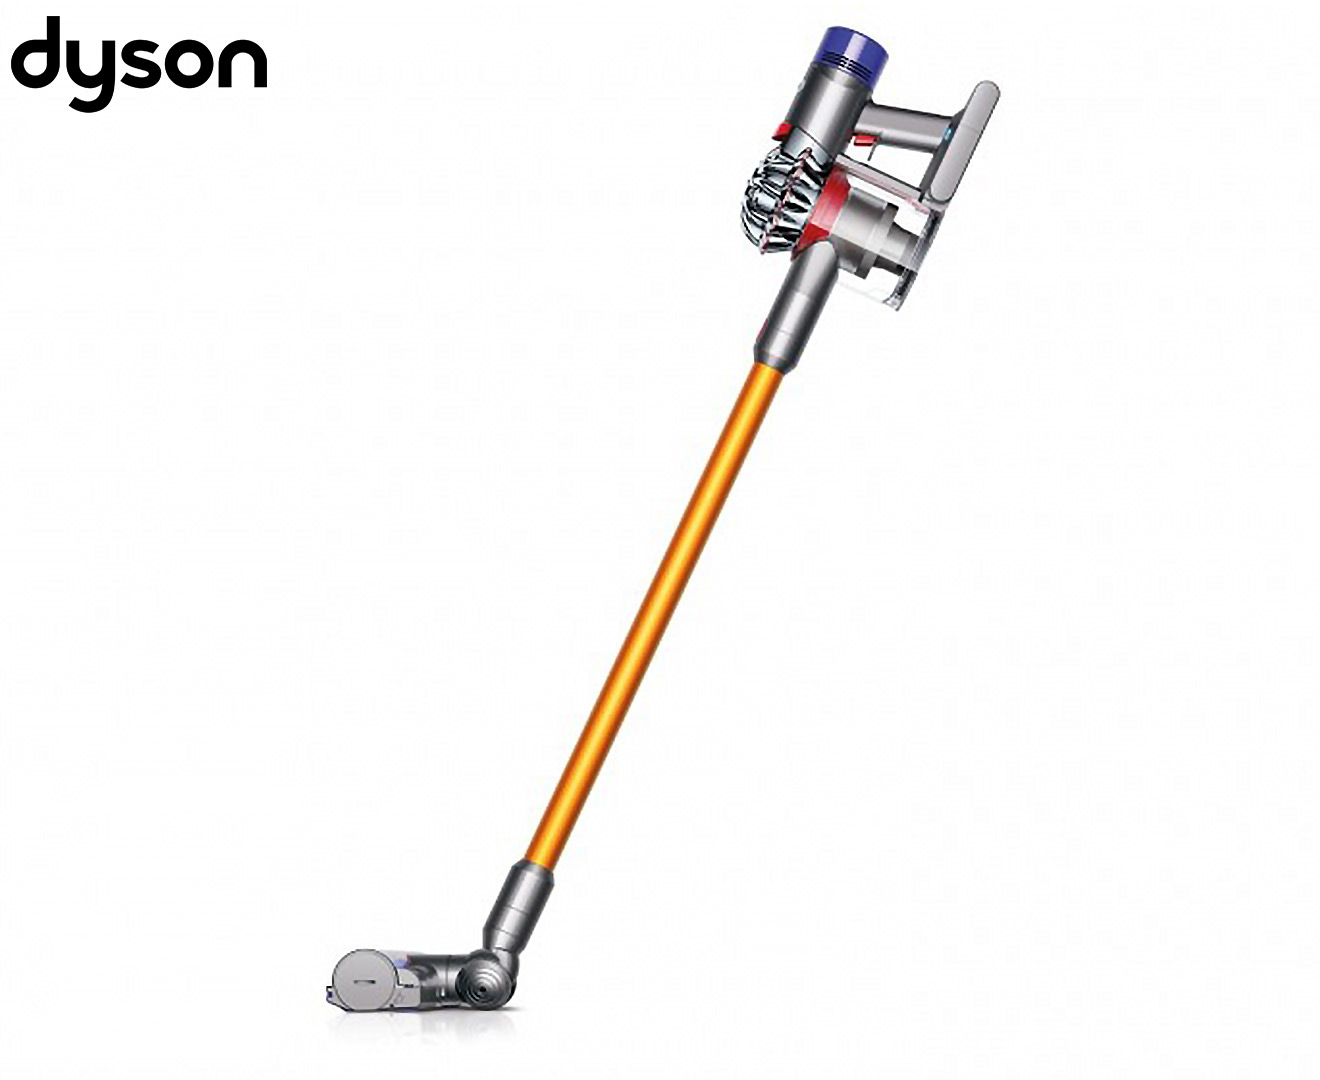 dyson v8 absolute cordless handstick vacuum